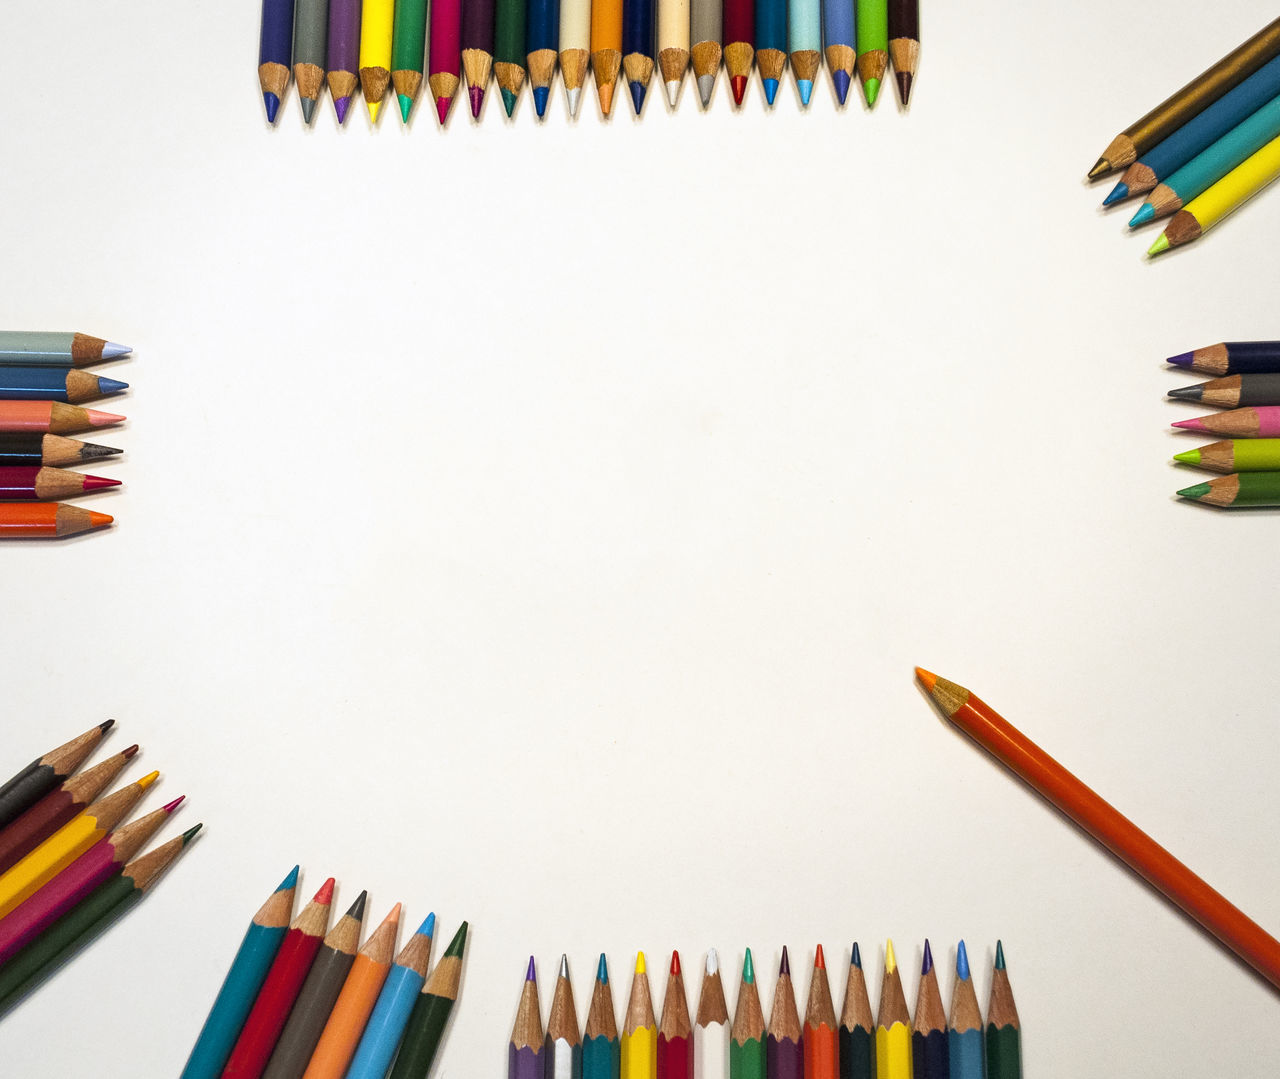 Various Colored Art Pencils Around Blank Sign Art Art, Drawing, Creativity Close-up Colored Pencil Crayon Education Eduction Group Of Objects Large Group Of Objects Multi Colored No People Pen Pencil Shool Still Life Studio Shot Variation White Background